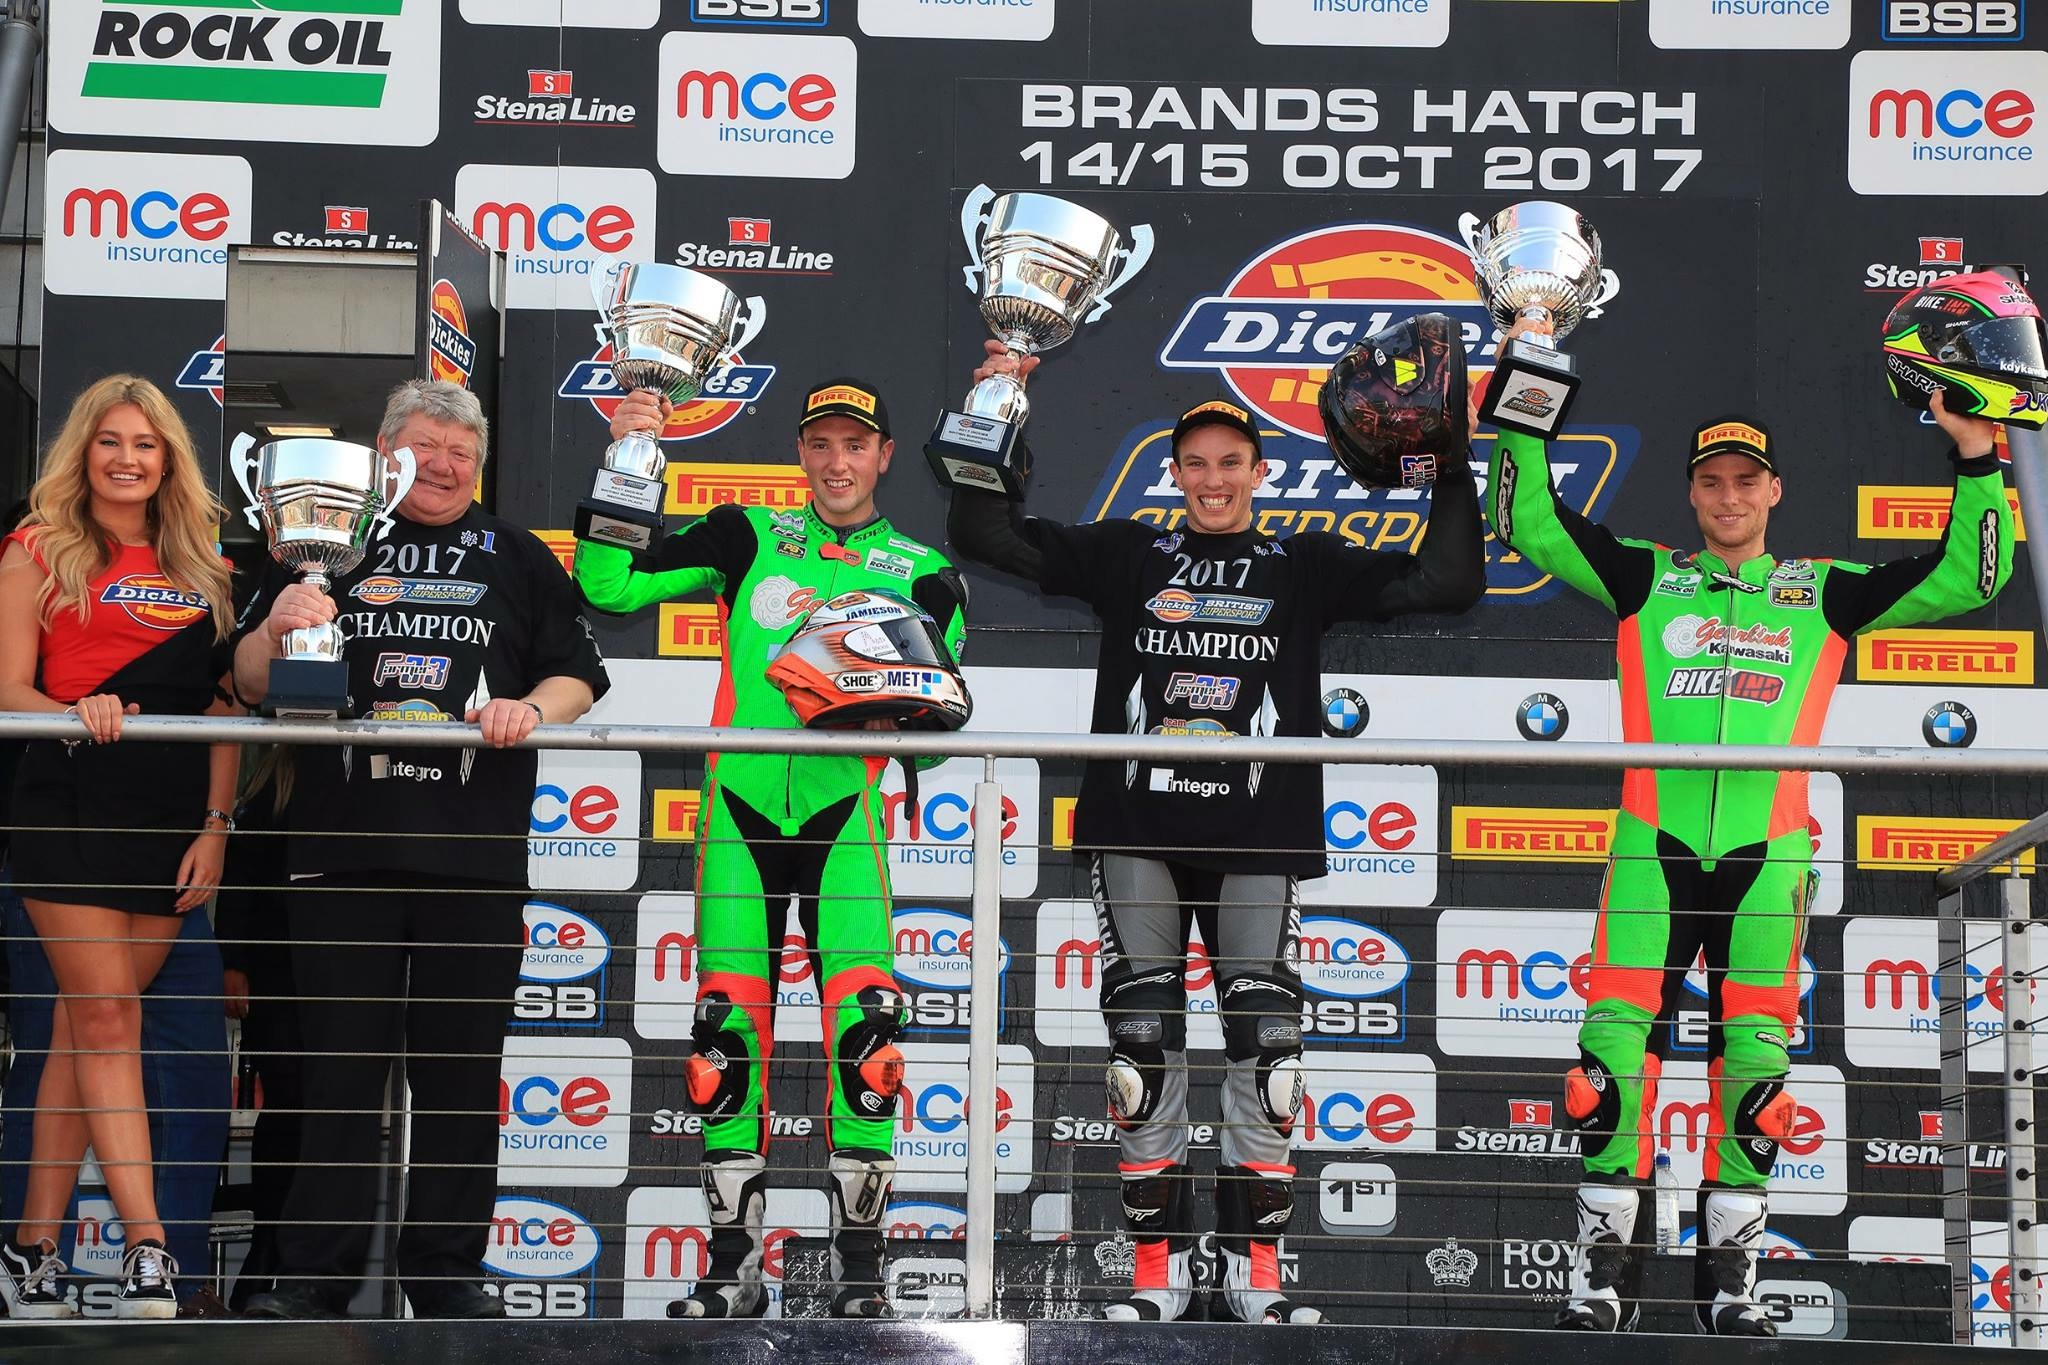 The victorious Keith Farmer on the podium (second, right) after securing the British Supersport Championship crown at Brands Hatch last weekend.